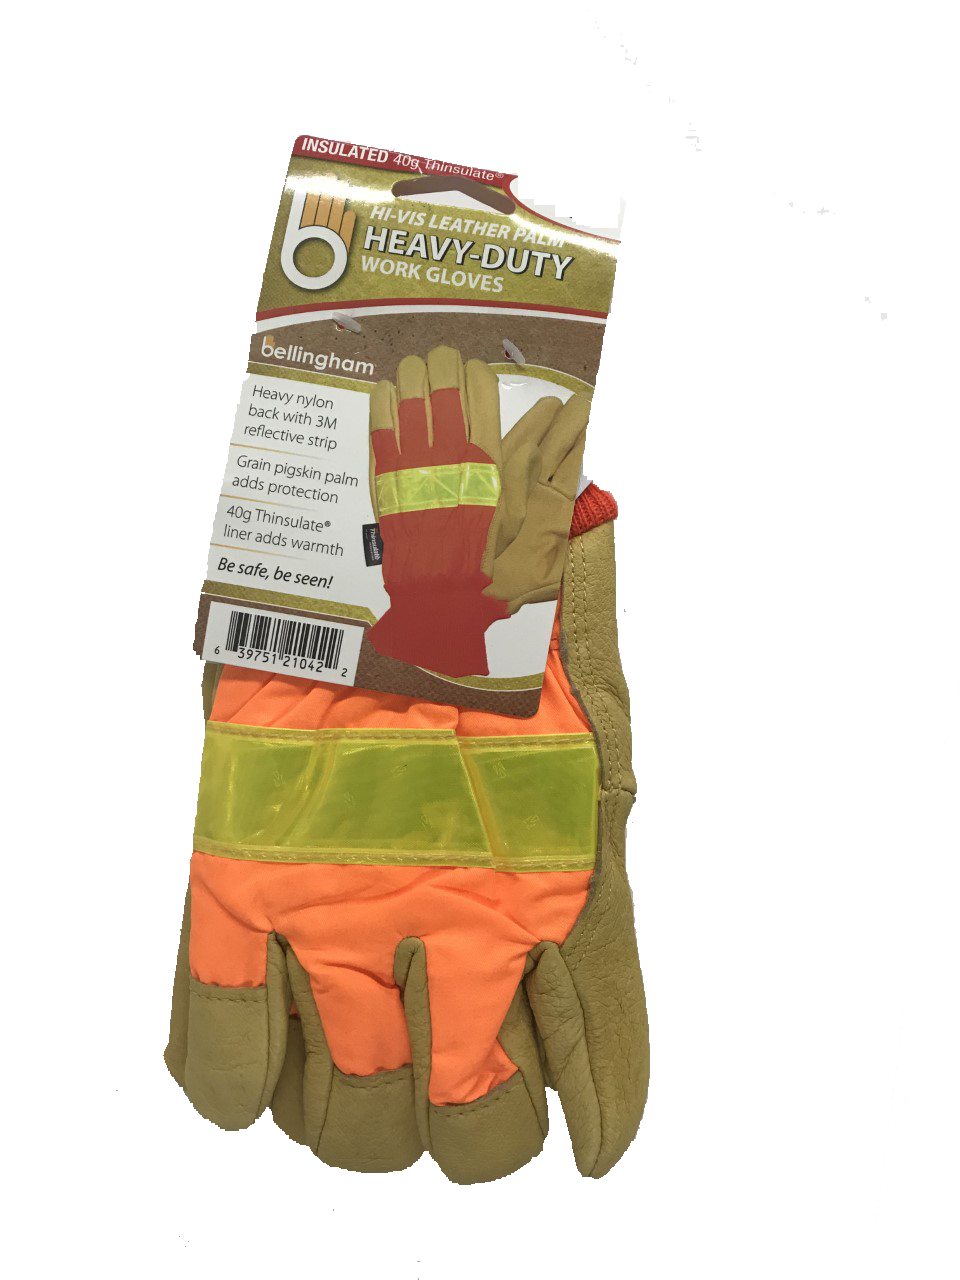 THINSULATE LINED, HEAVY DUTY HI-VIS ORANGE GLOVE WITH REFLECTIVE KNUCKLE